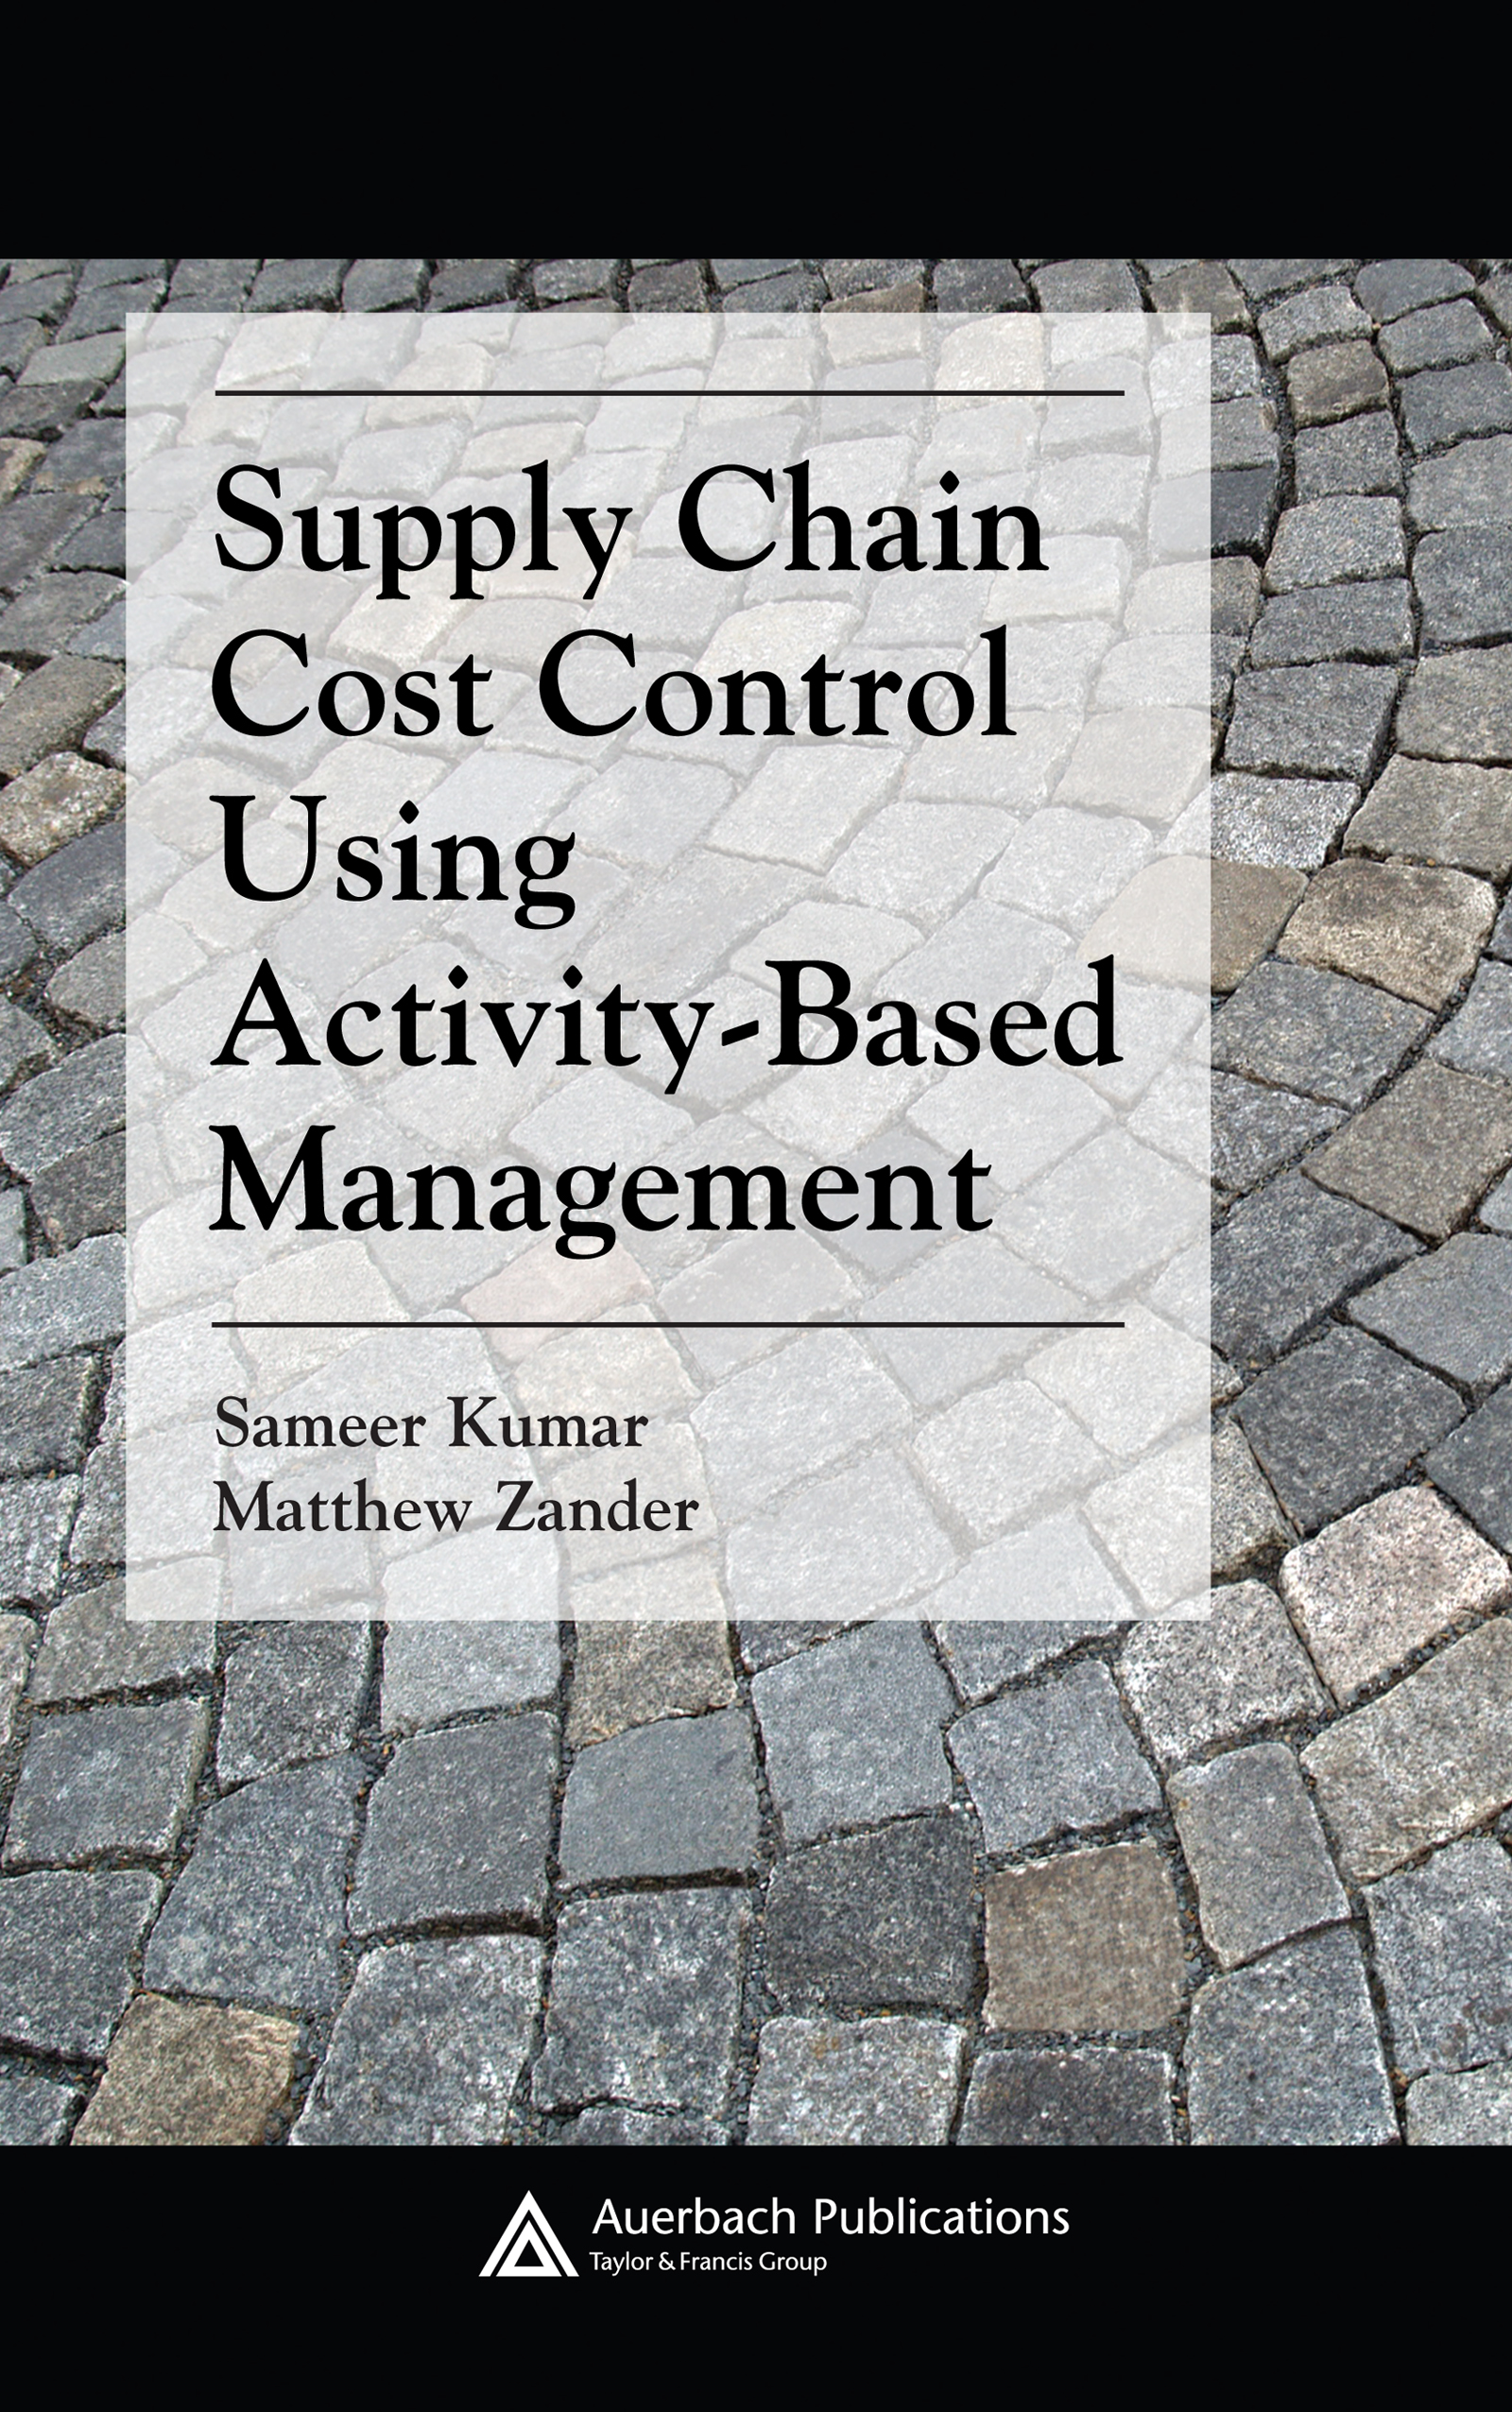 Download Ebook Supply Chain Cost Control Using Activity-Based Management by Matthew Zander Pdf